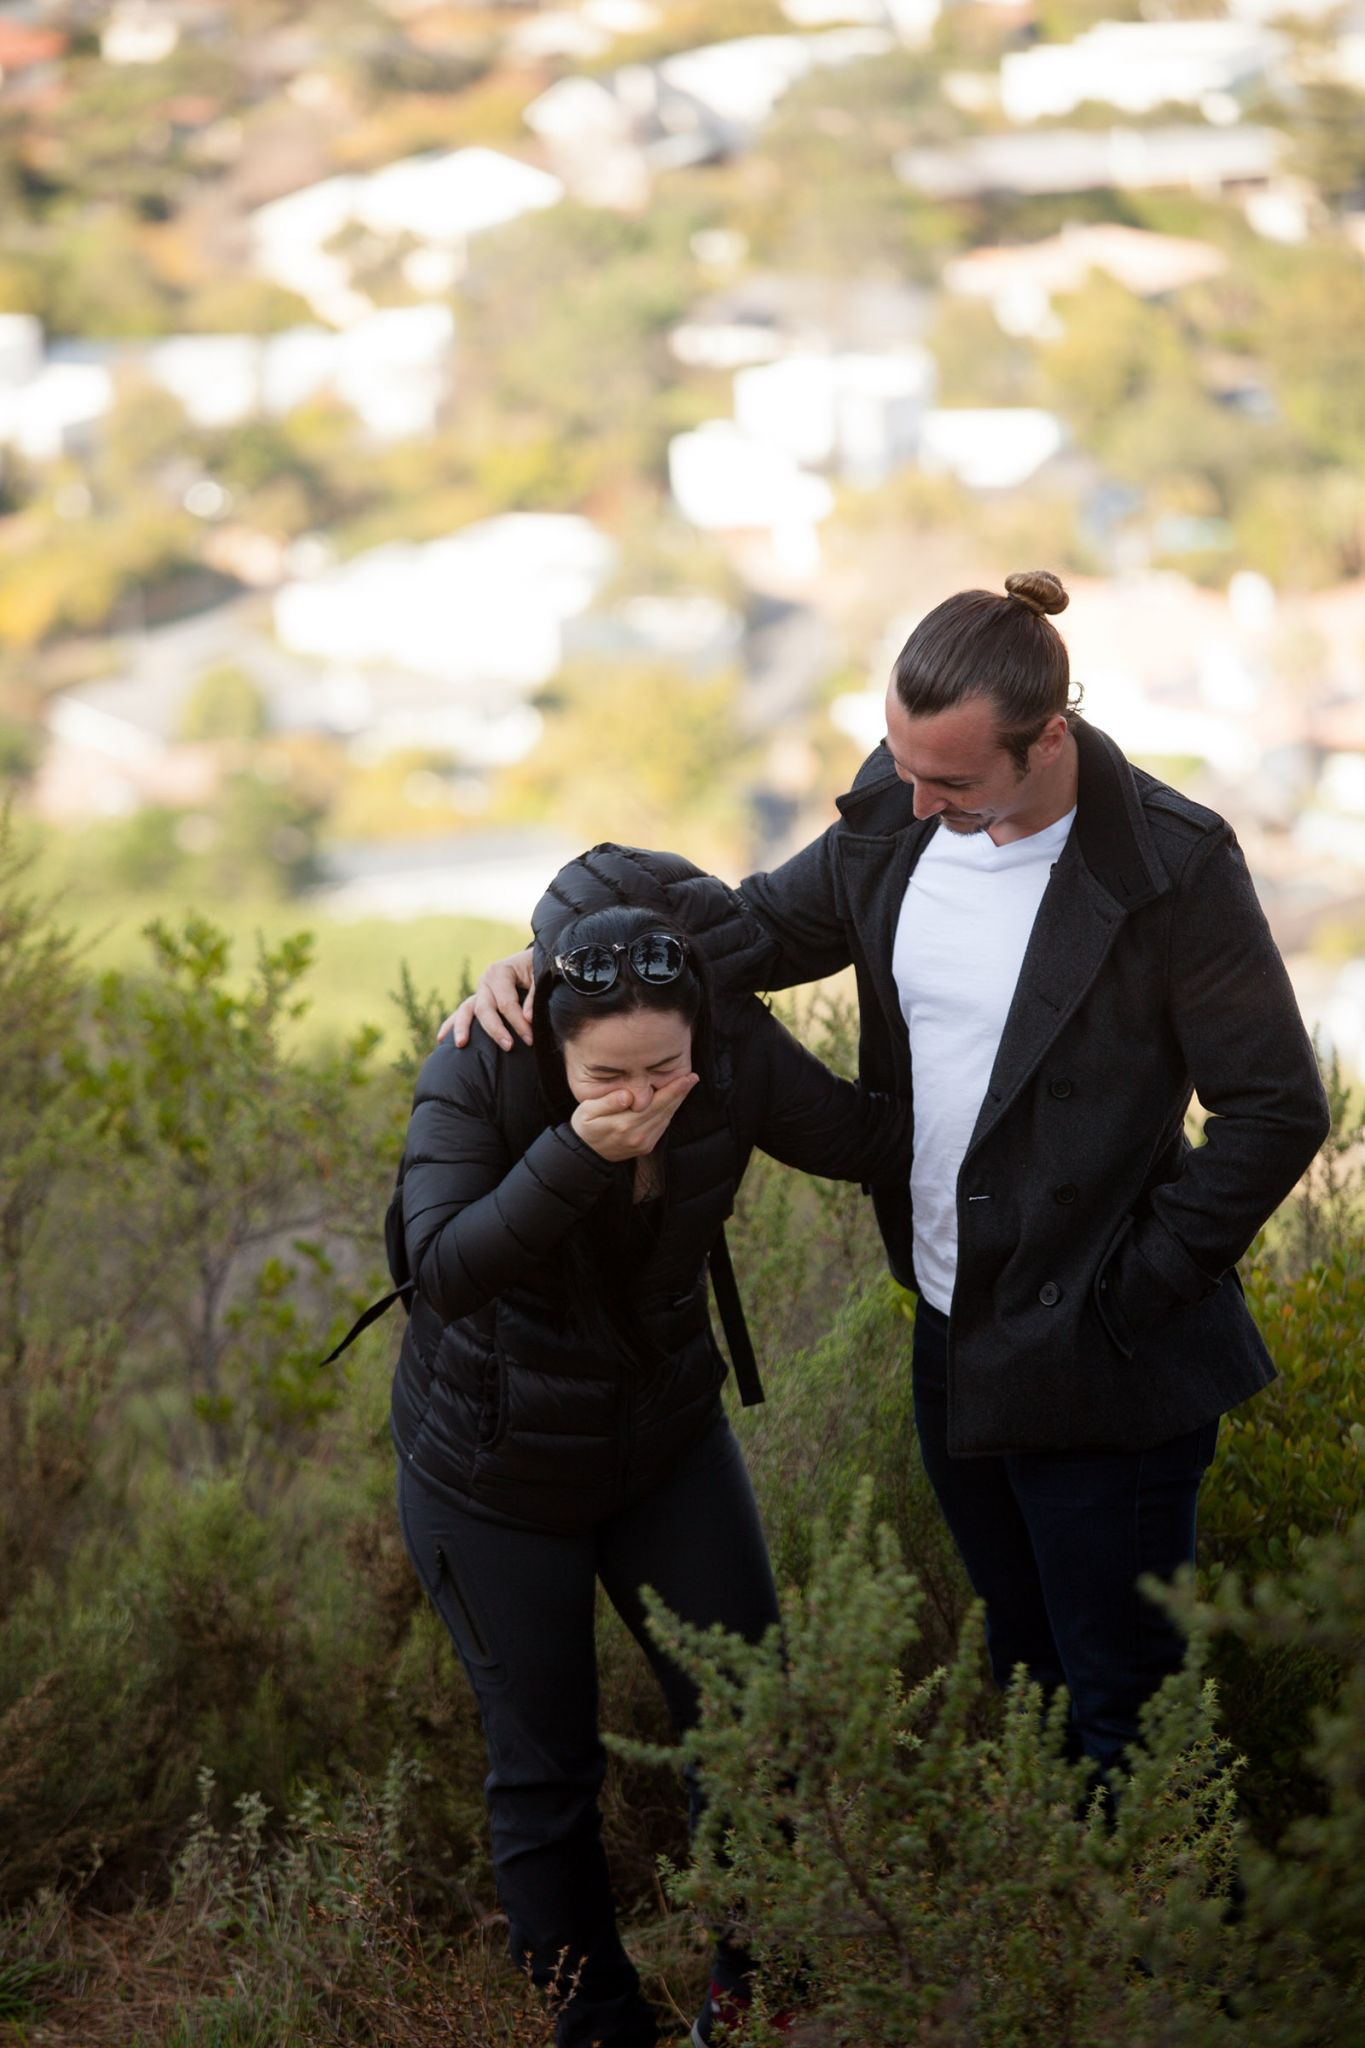 David and Sam marriage proposal on Lions Head